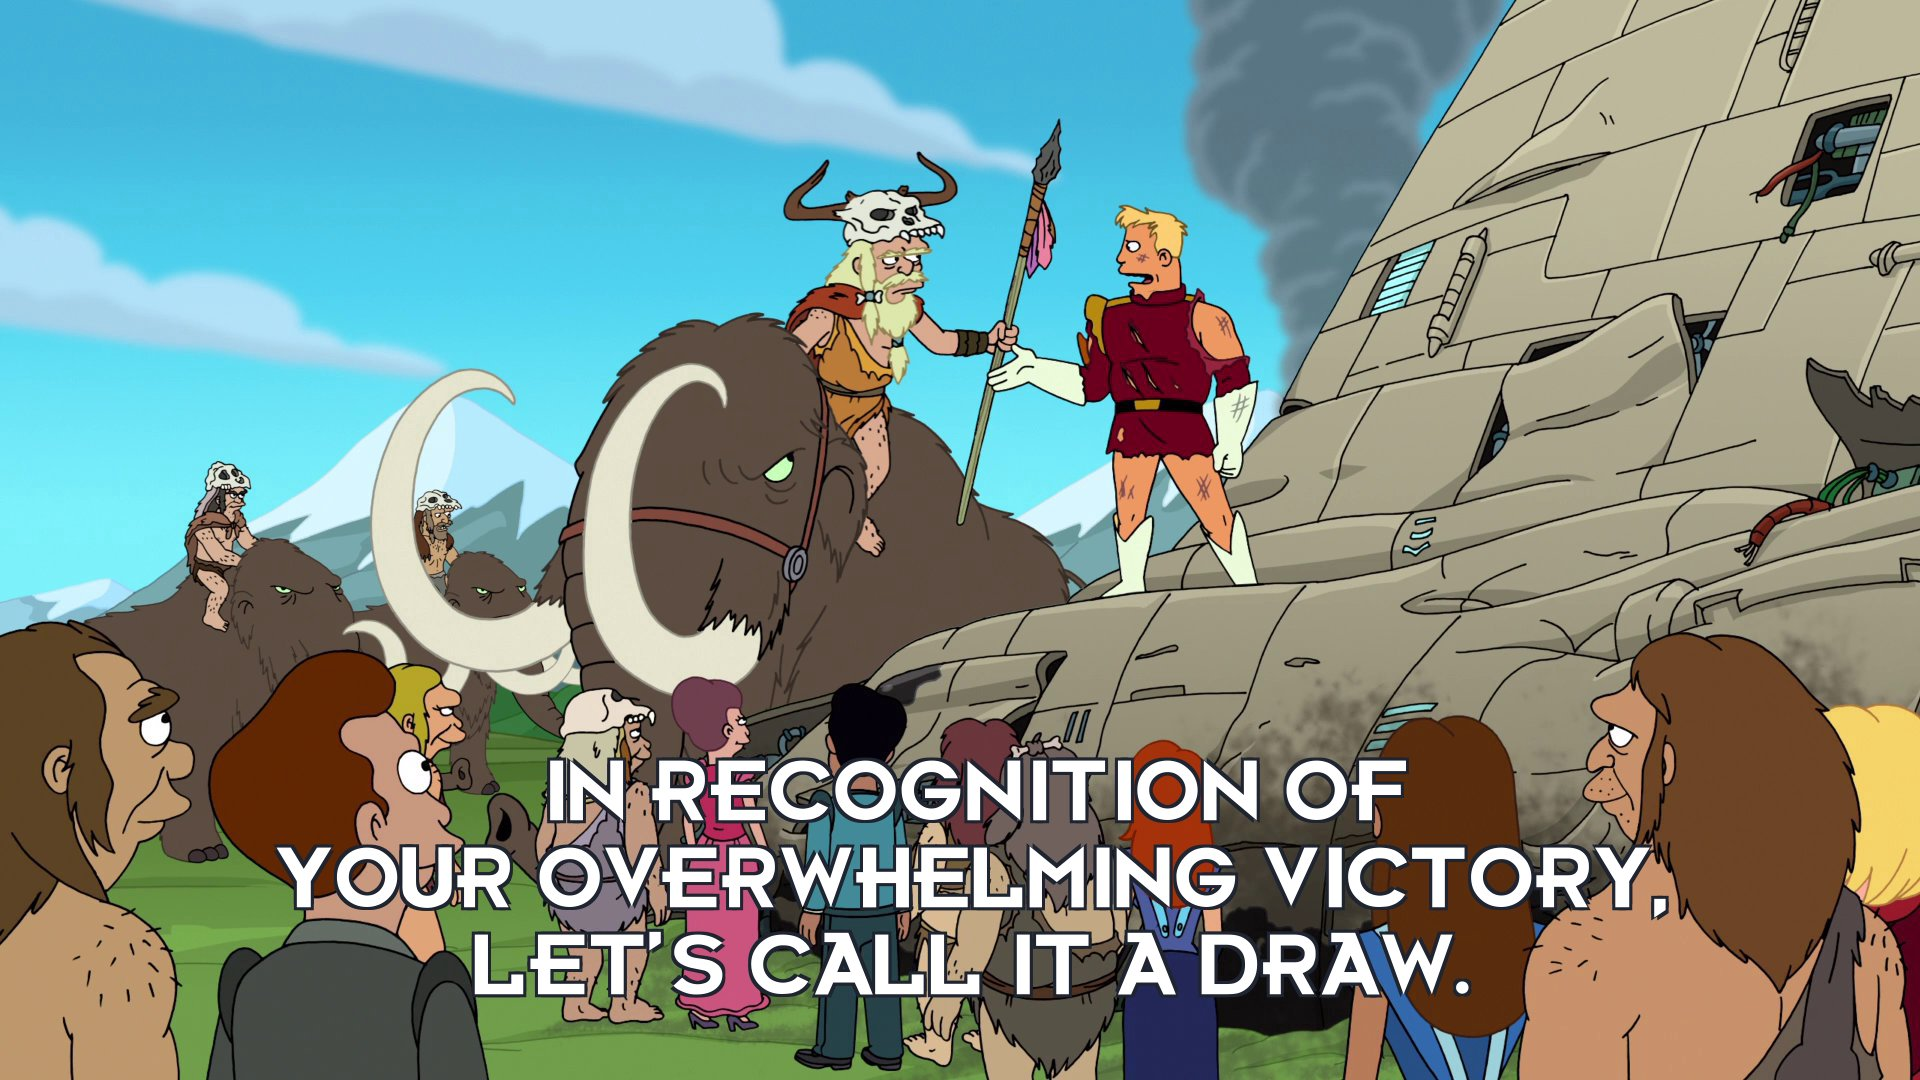 Zapp Brannigan: In recognition of your overwhelming victory, let's call it a draw.